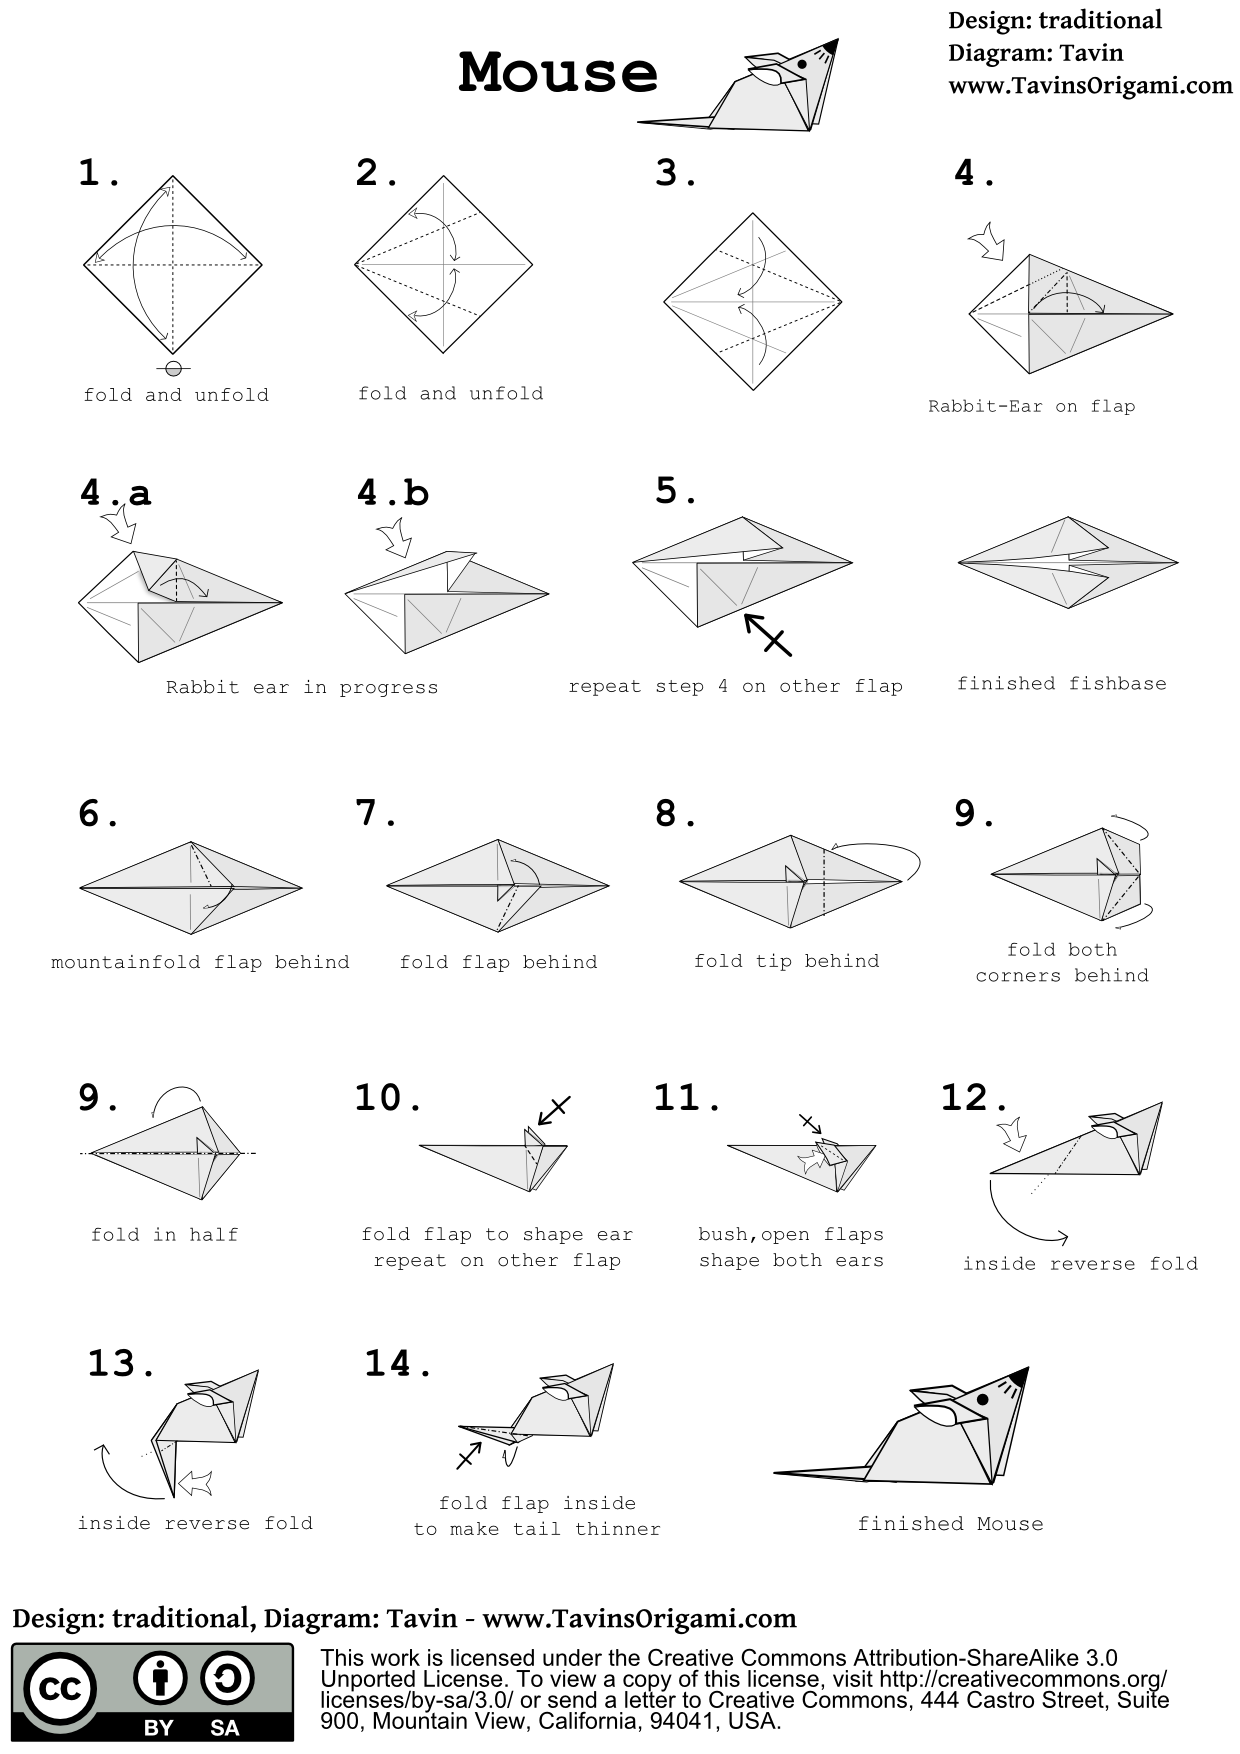 Origami mouse instructions origami mice and tutorials instructions for an origami mouse jeuxipadfo Images